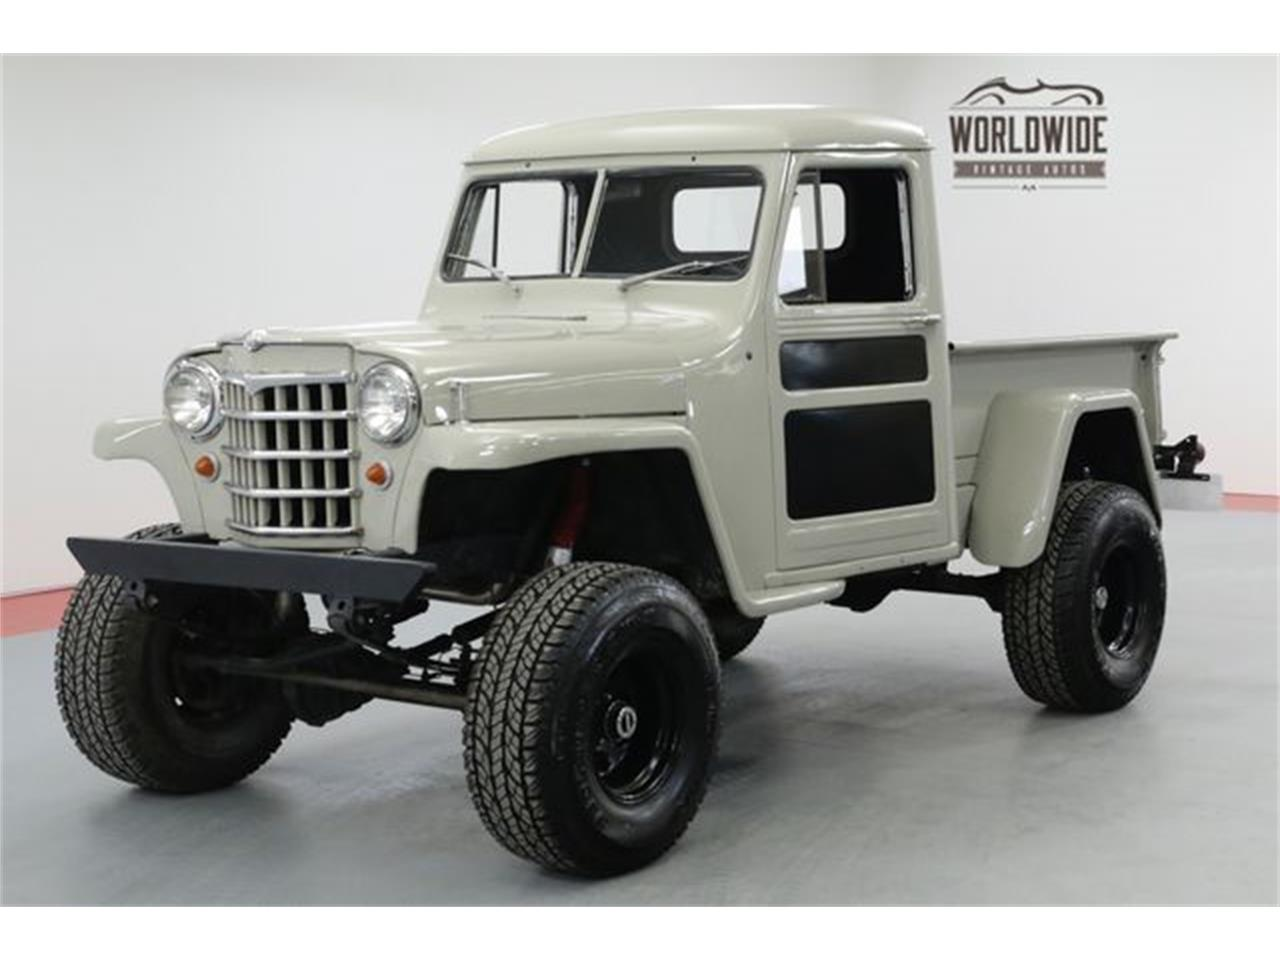 1953 Jeep Willys for Sale | ClicCars.com | CC-1086853 Jeep Fuse Box For Sale on jeep fog lamp switch, jeep cherokee serpentine belt replacement, jeep 4.0 turbo kit, jeep headlight fuse, jeep asd relay, jeep dome light fuse, jeep brake master cylinder, jeep fog light bulb, jeep temp sensor, jeep mass air flow sensor, jeep fuse block, jeep oil filter mount, jeep tipm problems, jeep starter solenoid, jeep rear door latch, jeep fuse cable, jeep shift solenoid, jeep cruise control switch, jeep turn signal relay, jeep evap system,